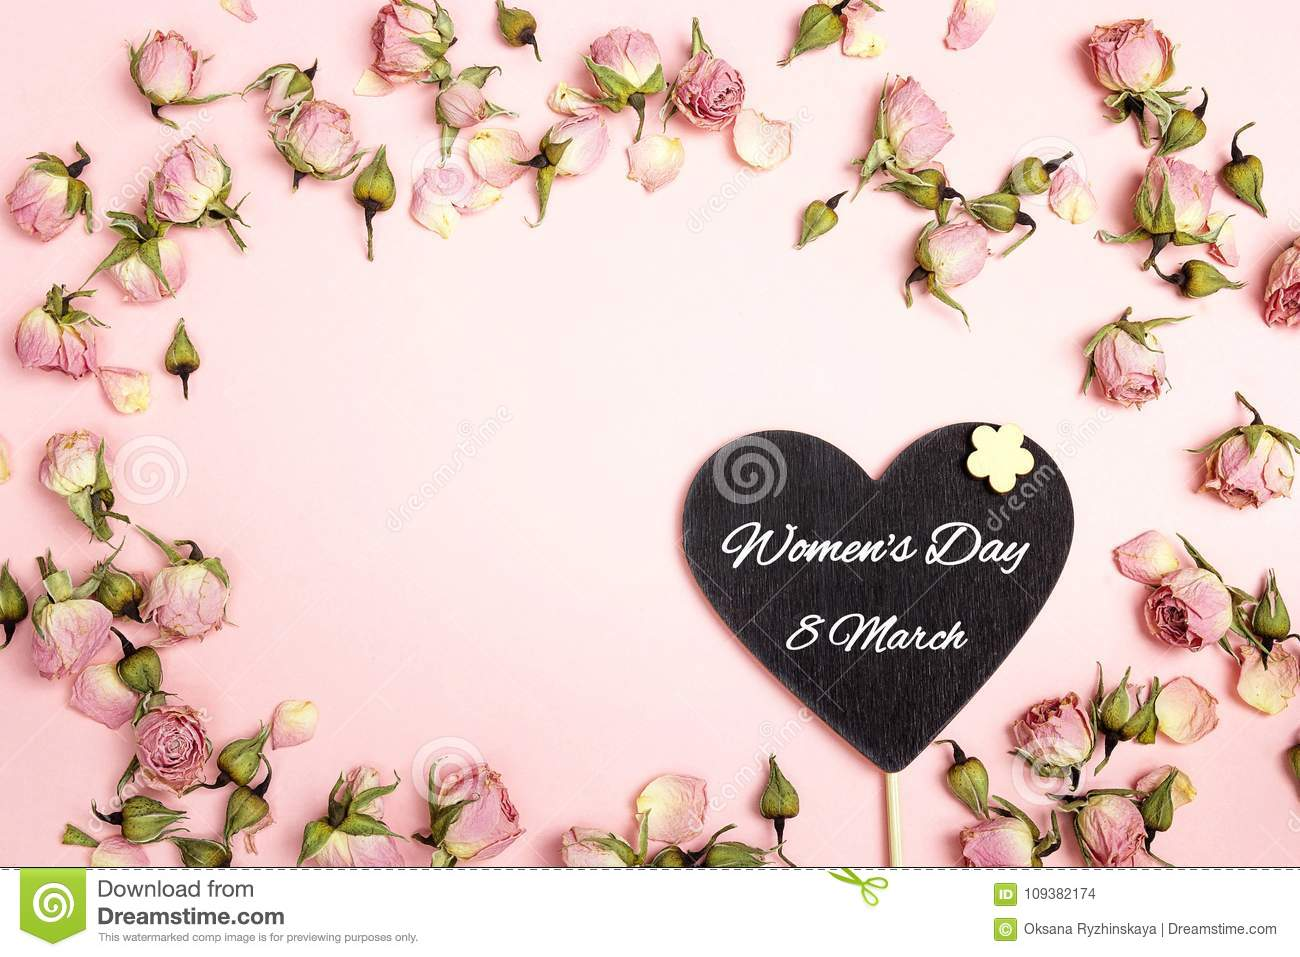 Women`s Day greeting message on heart-blackboard with small dry